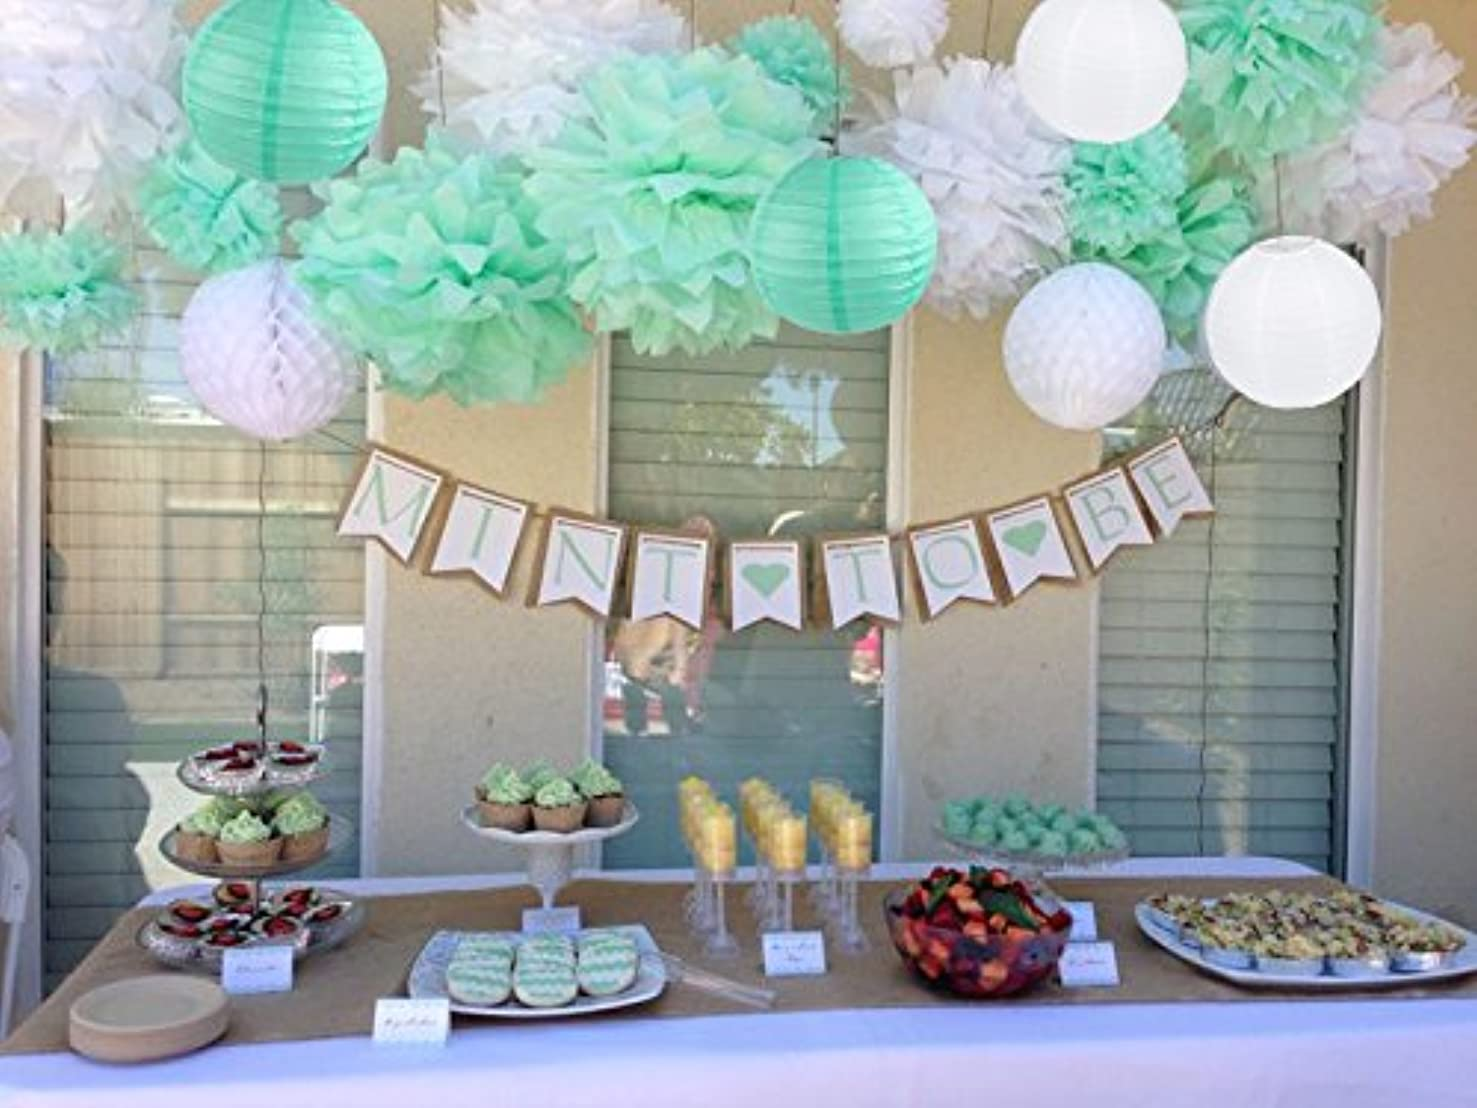 Sogorge 19 Pcs Party Decoration Kit White Mint Green Tissue Paper Pom Poms Flowers Papers Lanterns Birthday Wedding Christening Frozen Theme Party Decorations for Adults Boys Girls